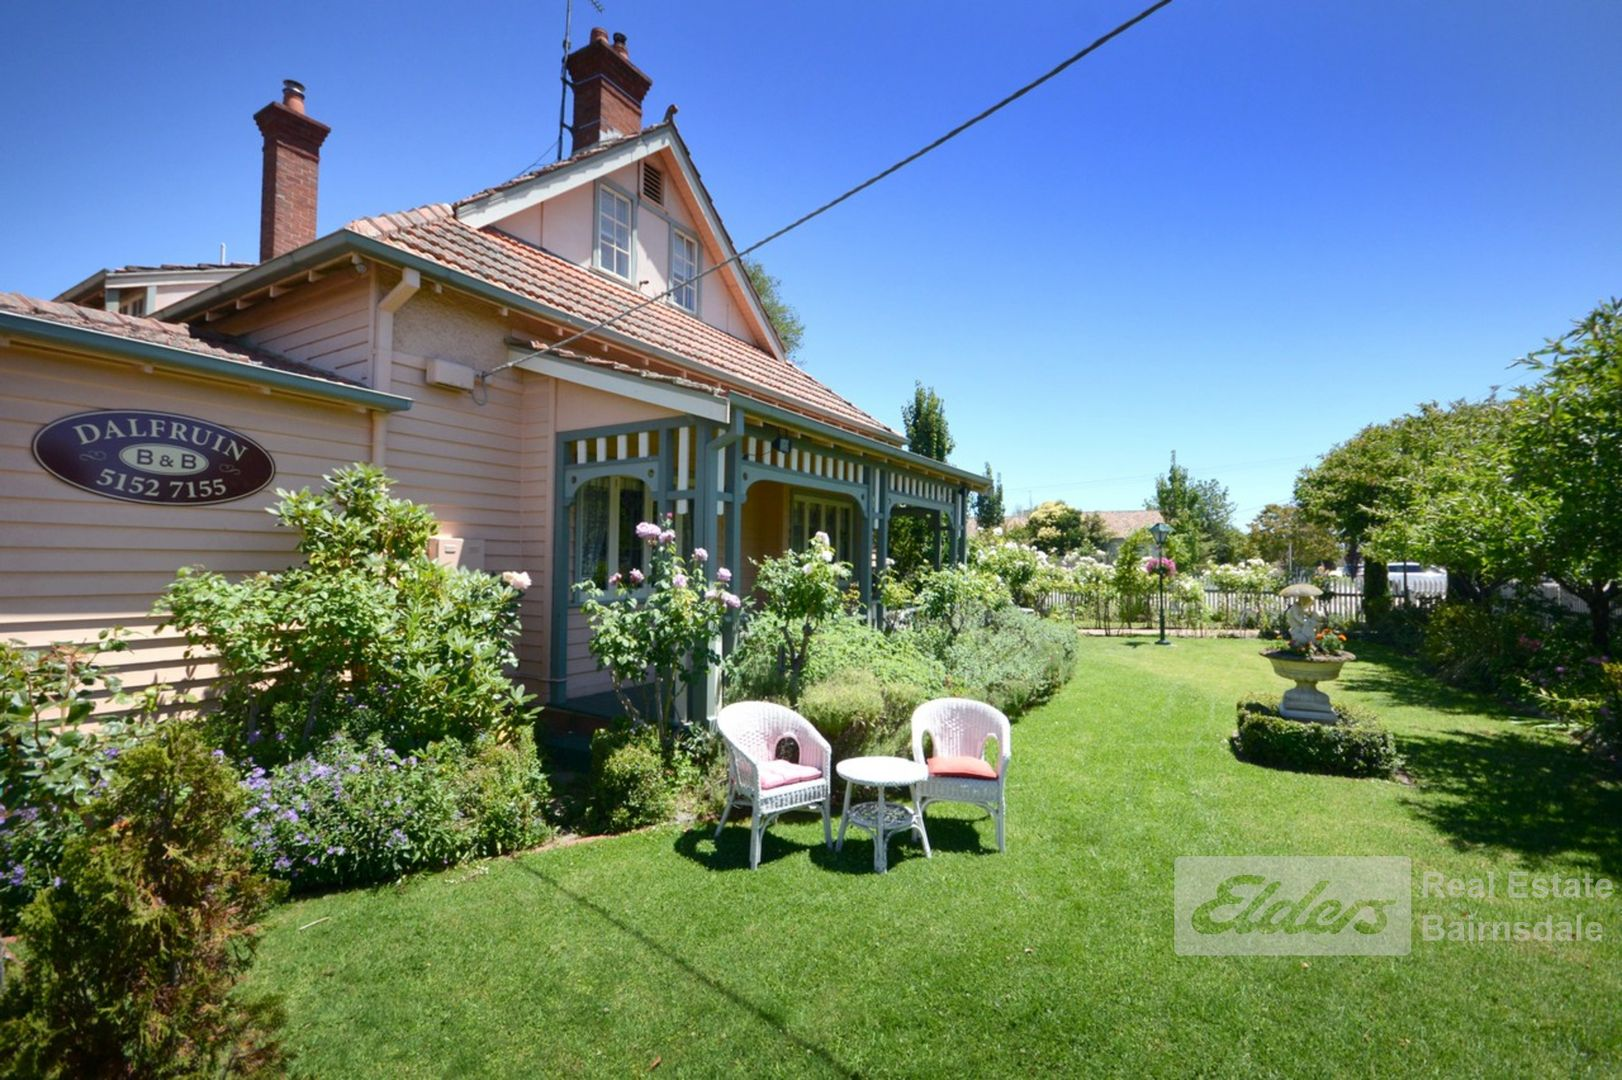 18 McCulloch Street, Bairnsdale VIC 3875, Image 1